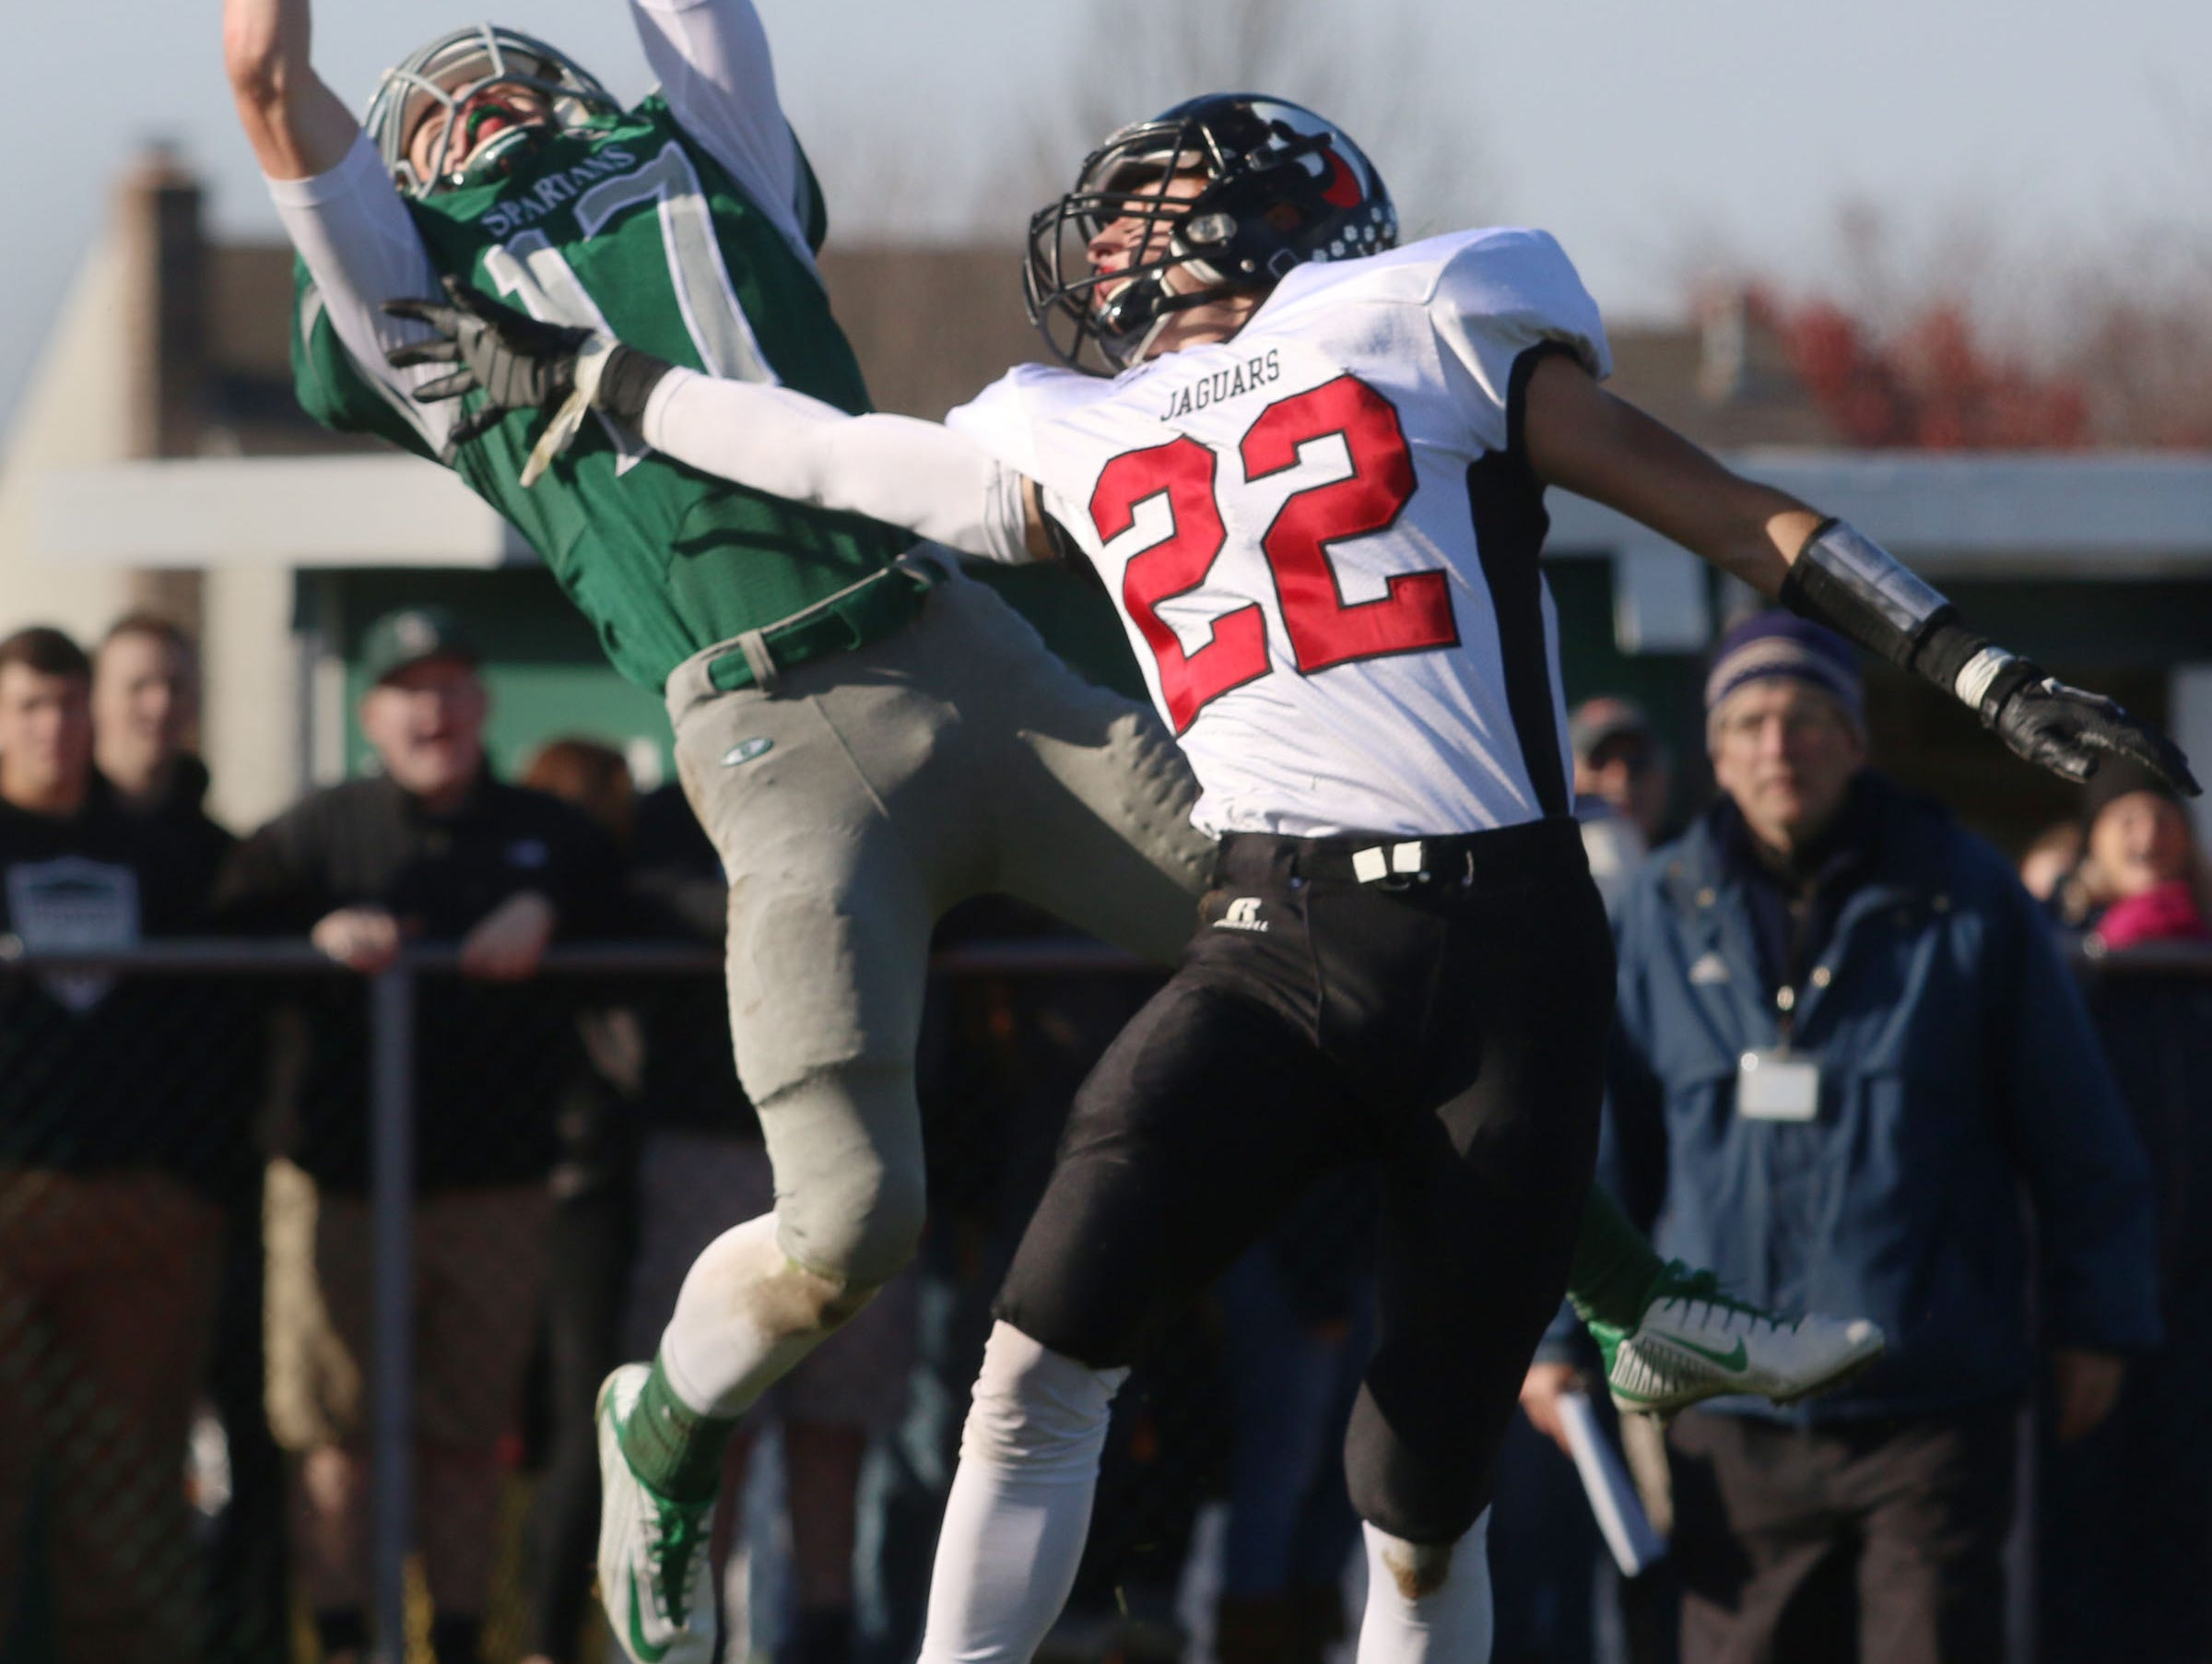 Jackson Memorial's Kyle Lona (22) defends on a pass attempt to Steinert's Conner Braddock in the end zone. Jackson Memorial vs Steinert NJSIAA Central Group IV semifinal game. Hamilton Township, NJ Saturday, November 21, 2015 @dhoodhood